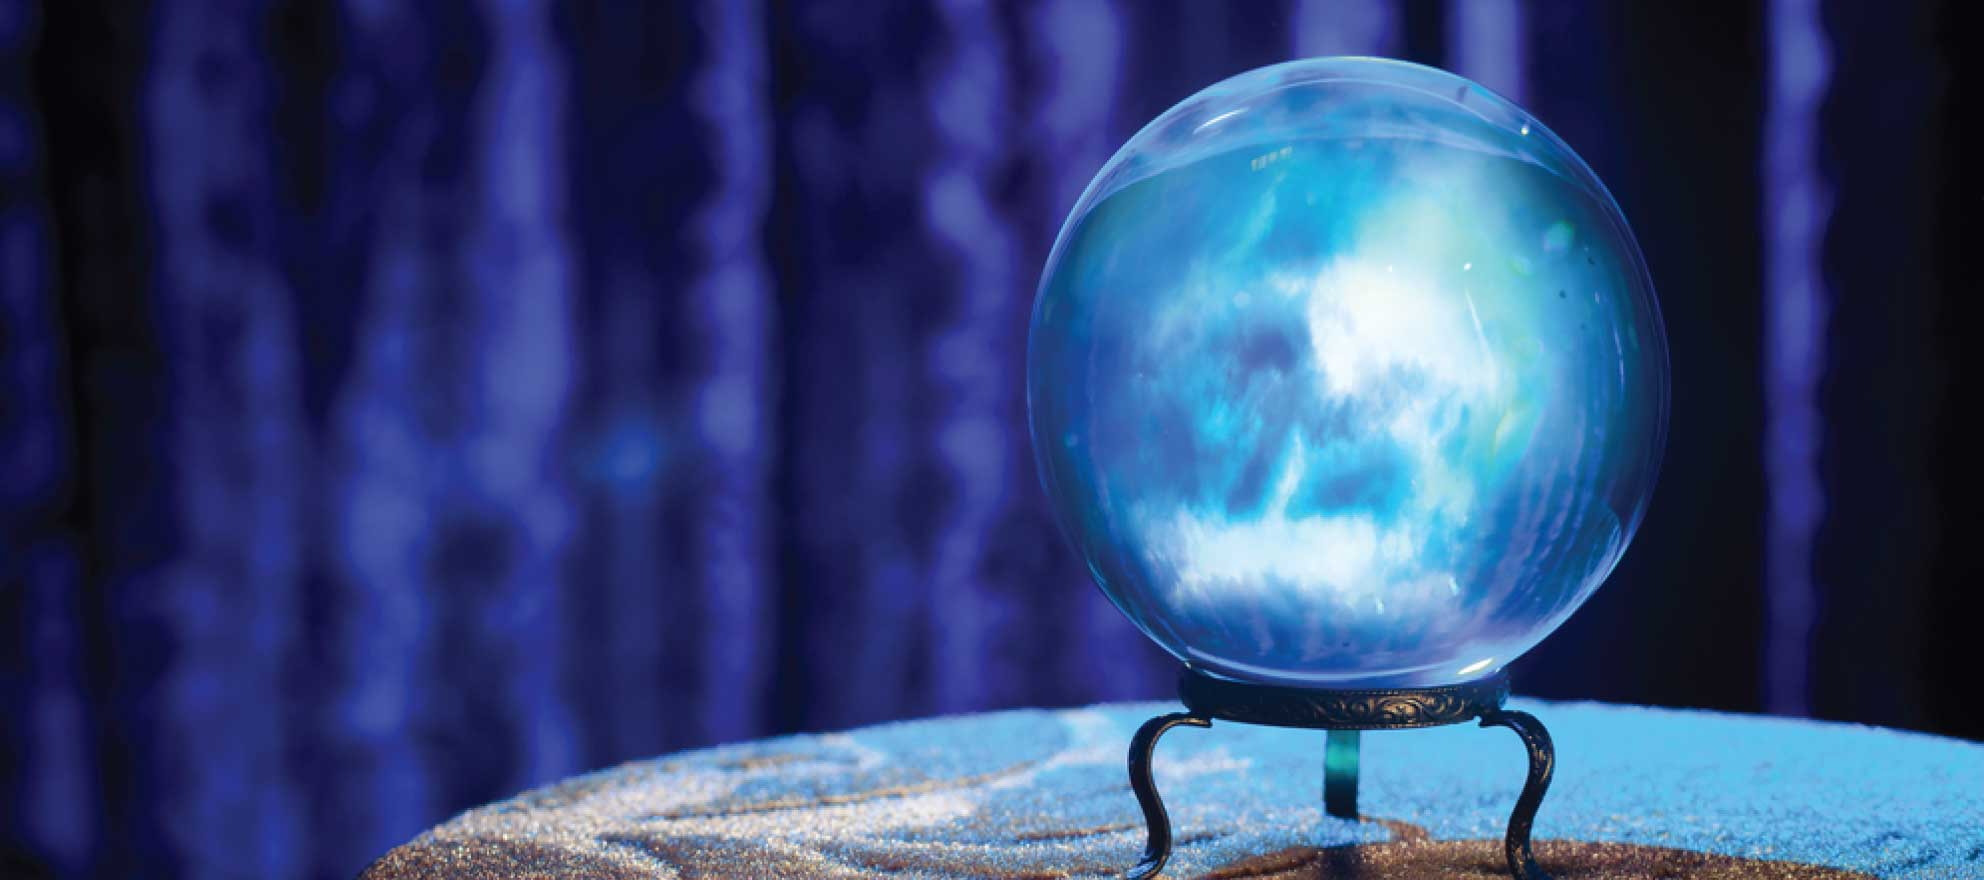 10 predictions of where real estate marketing will be in 2020